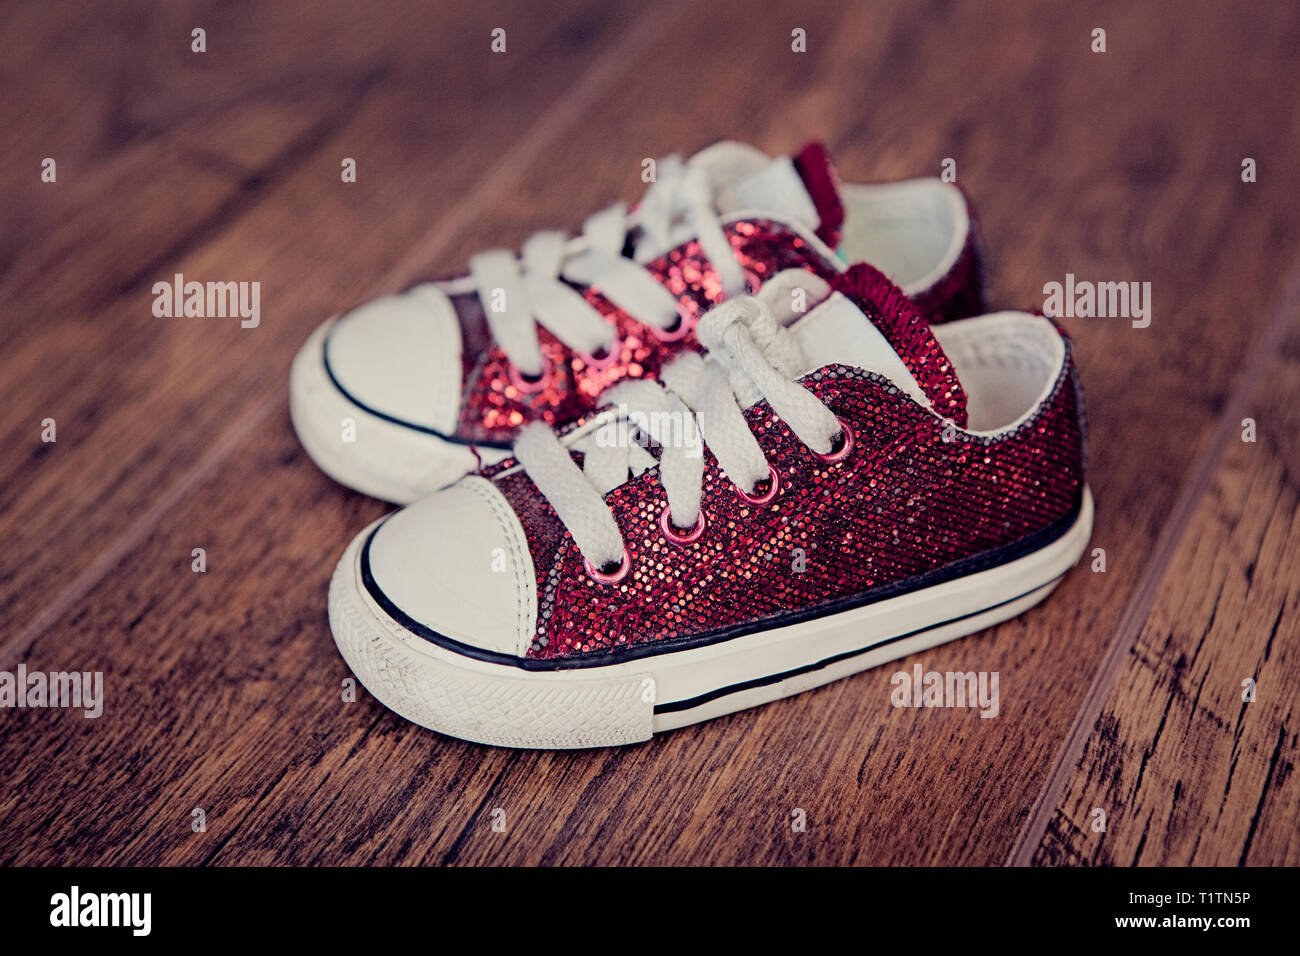 Small red baby sneakers with shoelaces on a wooden floor - Stock Image